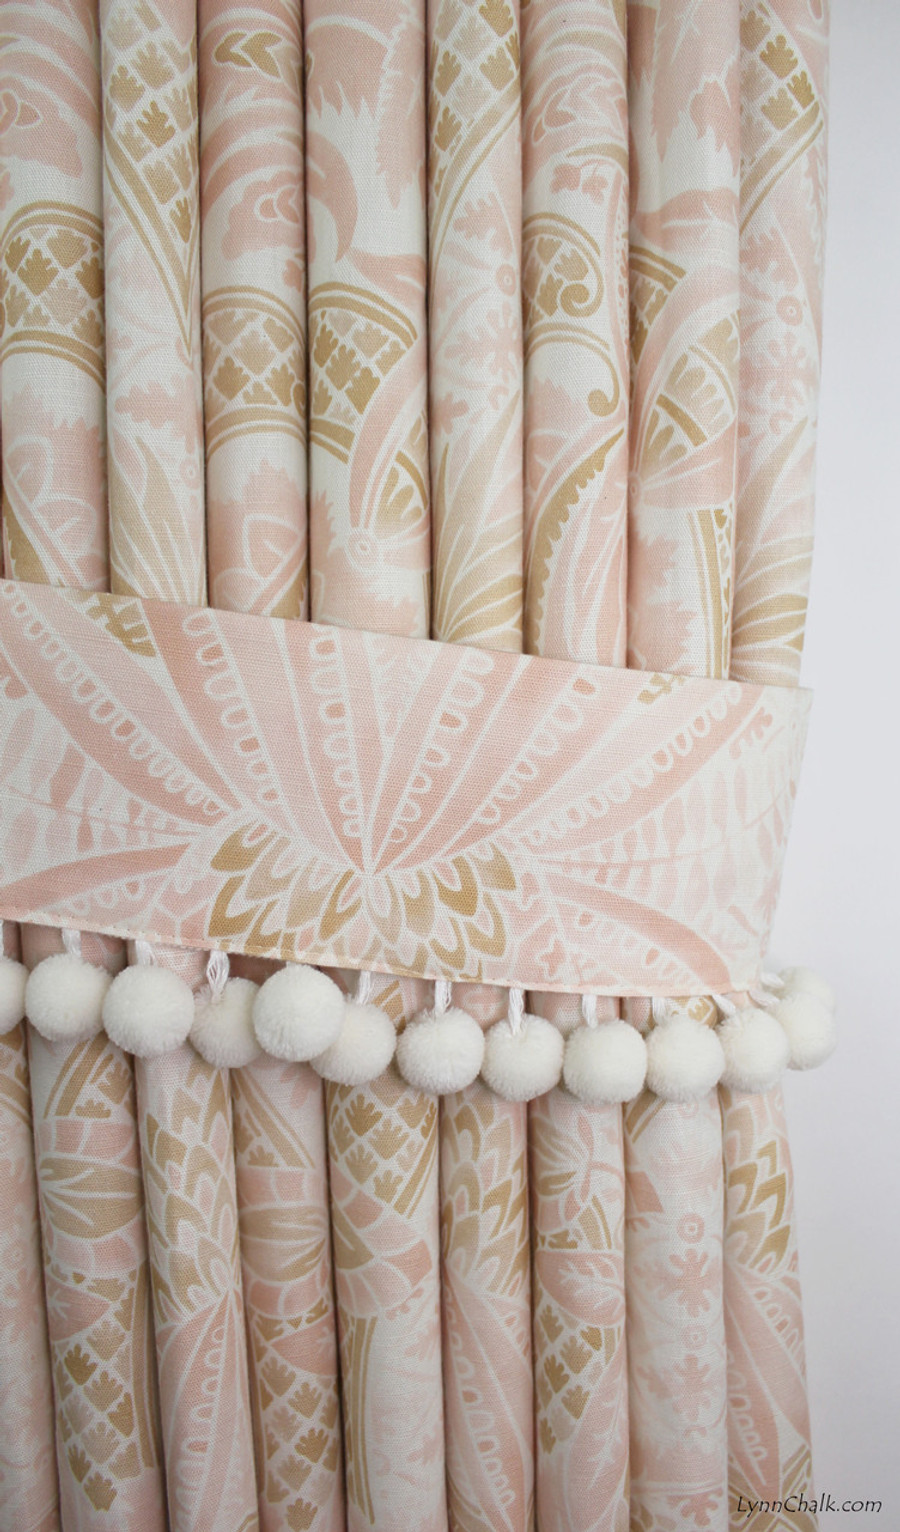 Custom Drapes in Cap Ferrat Blush.  Tie Backs with Samuel and Sons Pom Pom Trim in Whipped Cream.